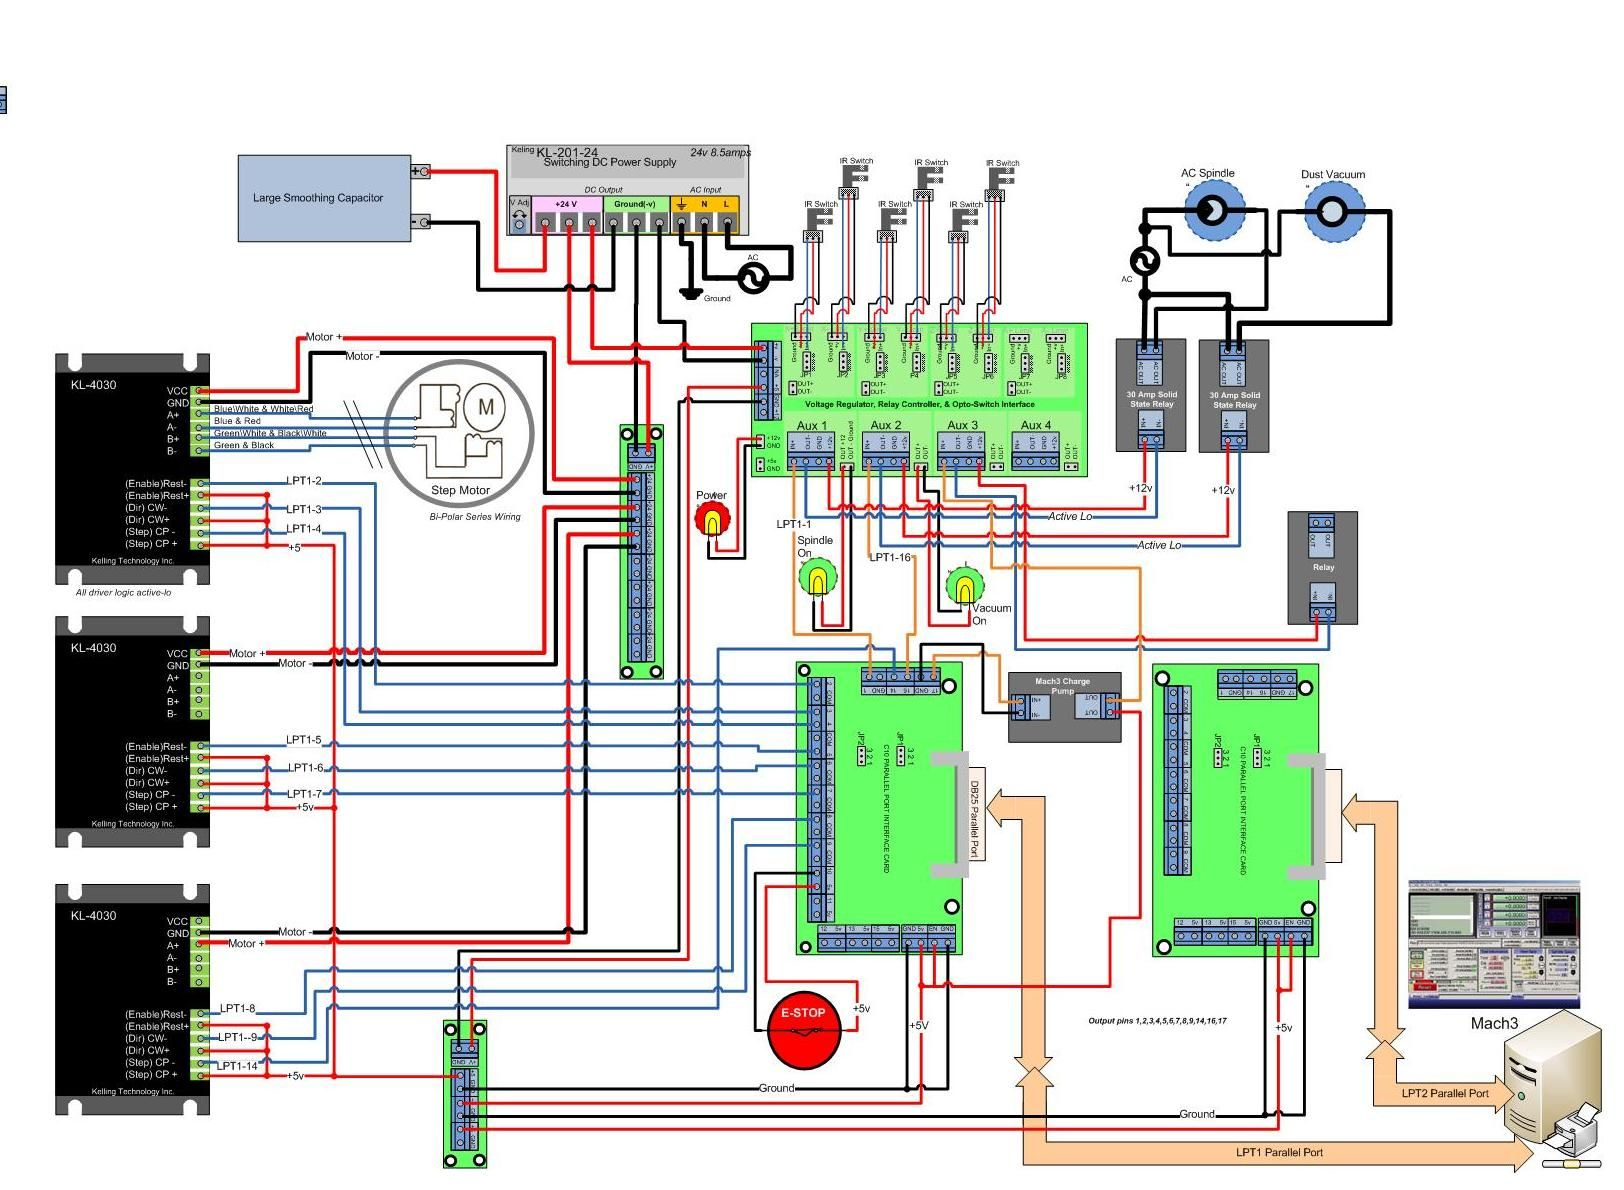 de60b189cc98ab72eeb9d2e3f3d349dc cnc wiring diagram ltp5000d cnc wiring diagram \u2022 wiring diagrams longs stepper motor wiring diagram at eliteediting.co